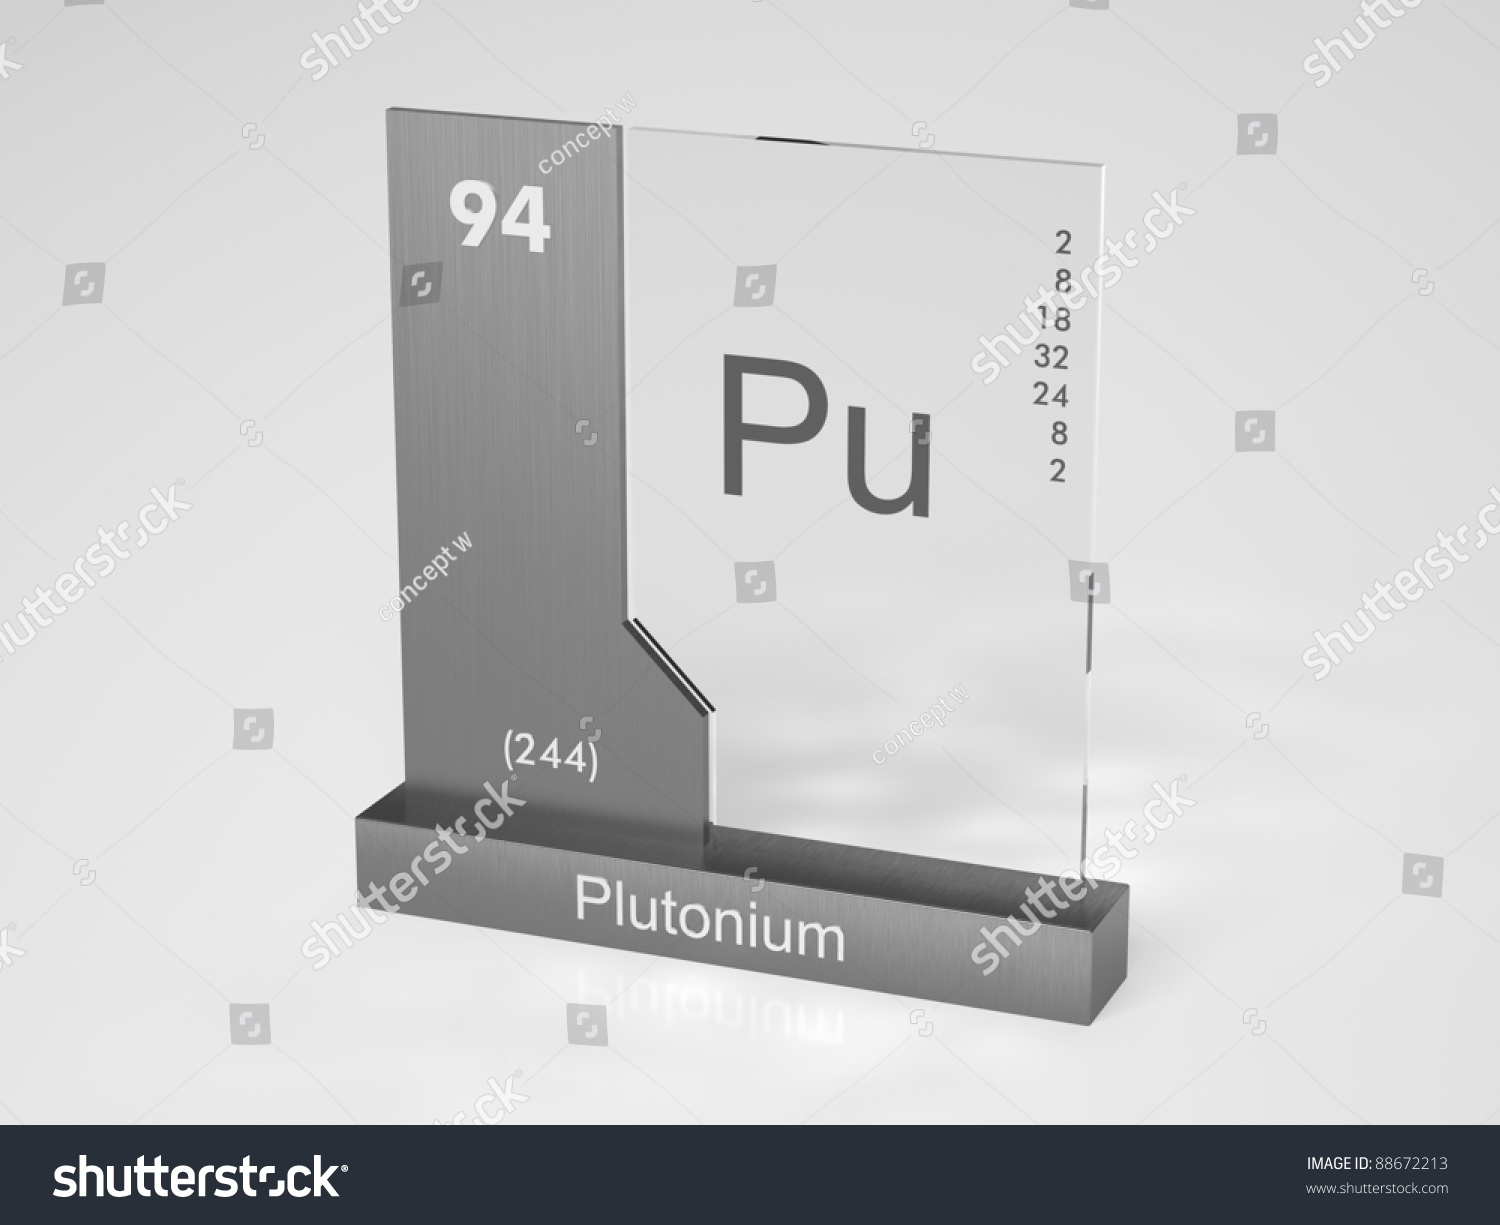 Plutonium symbol pu chemical element periodic stock illustration plutonium symbol pu chemical element of the periodic table gamestrikefo Image collections